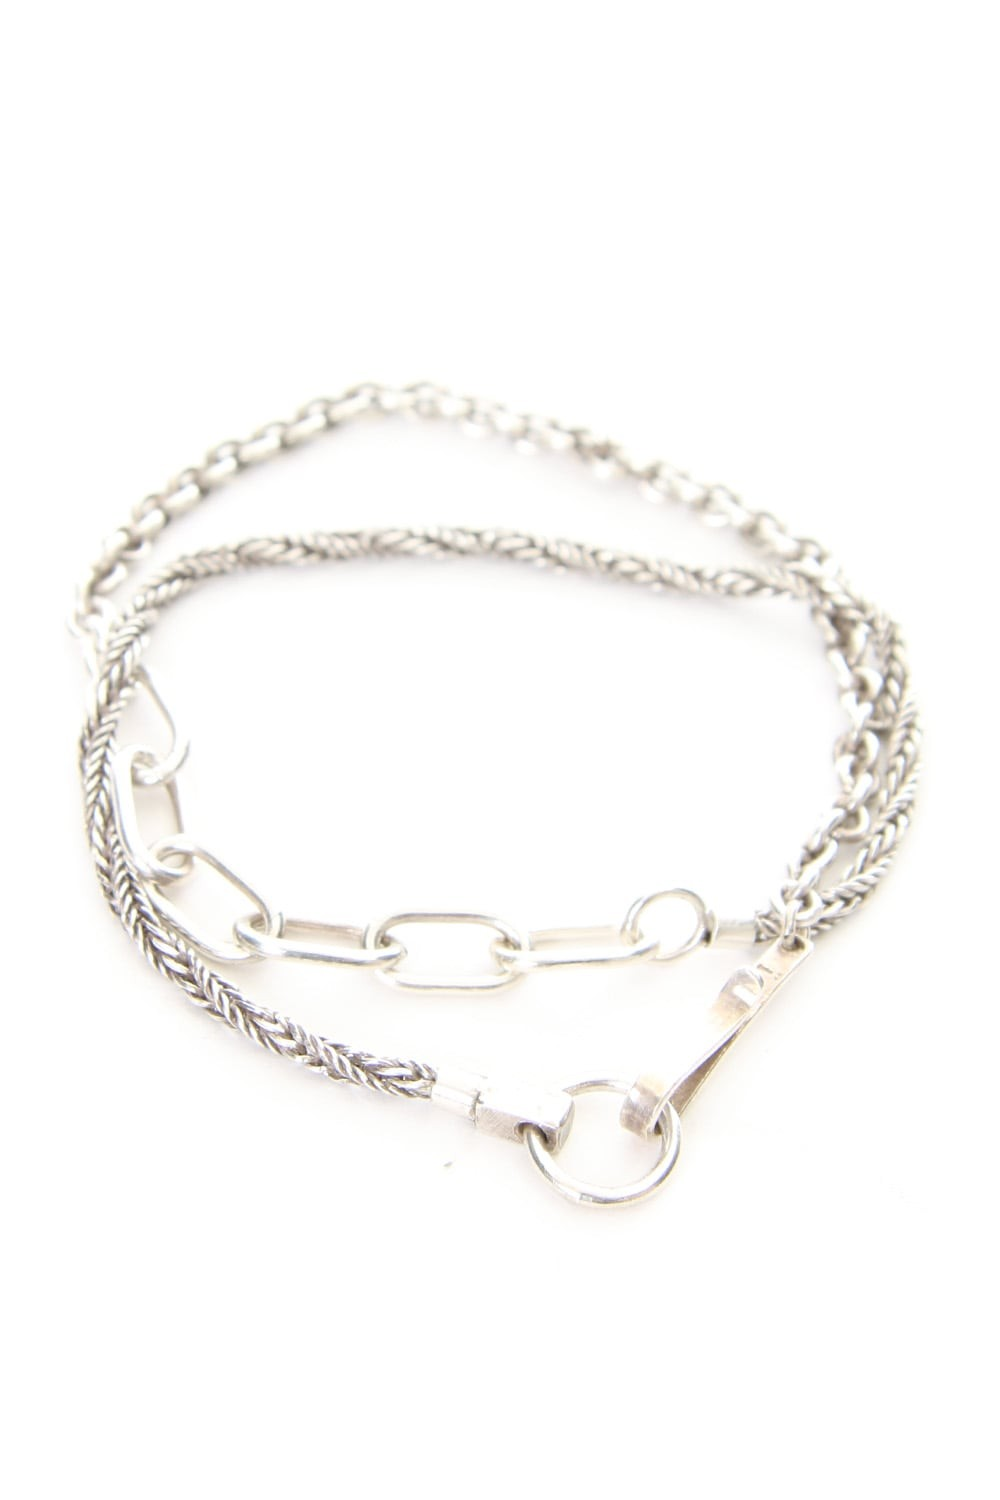 Triple Combination Chain Bracelet - io-02-081